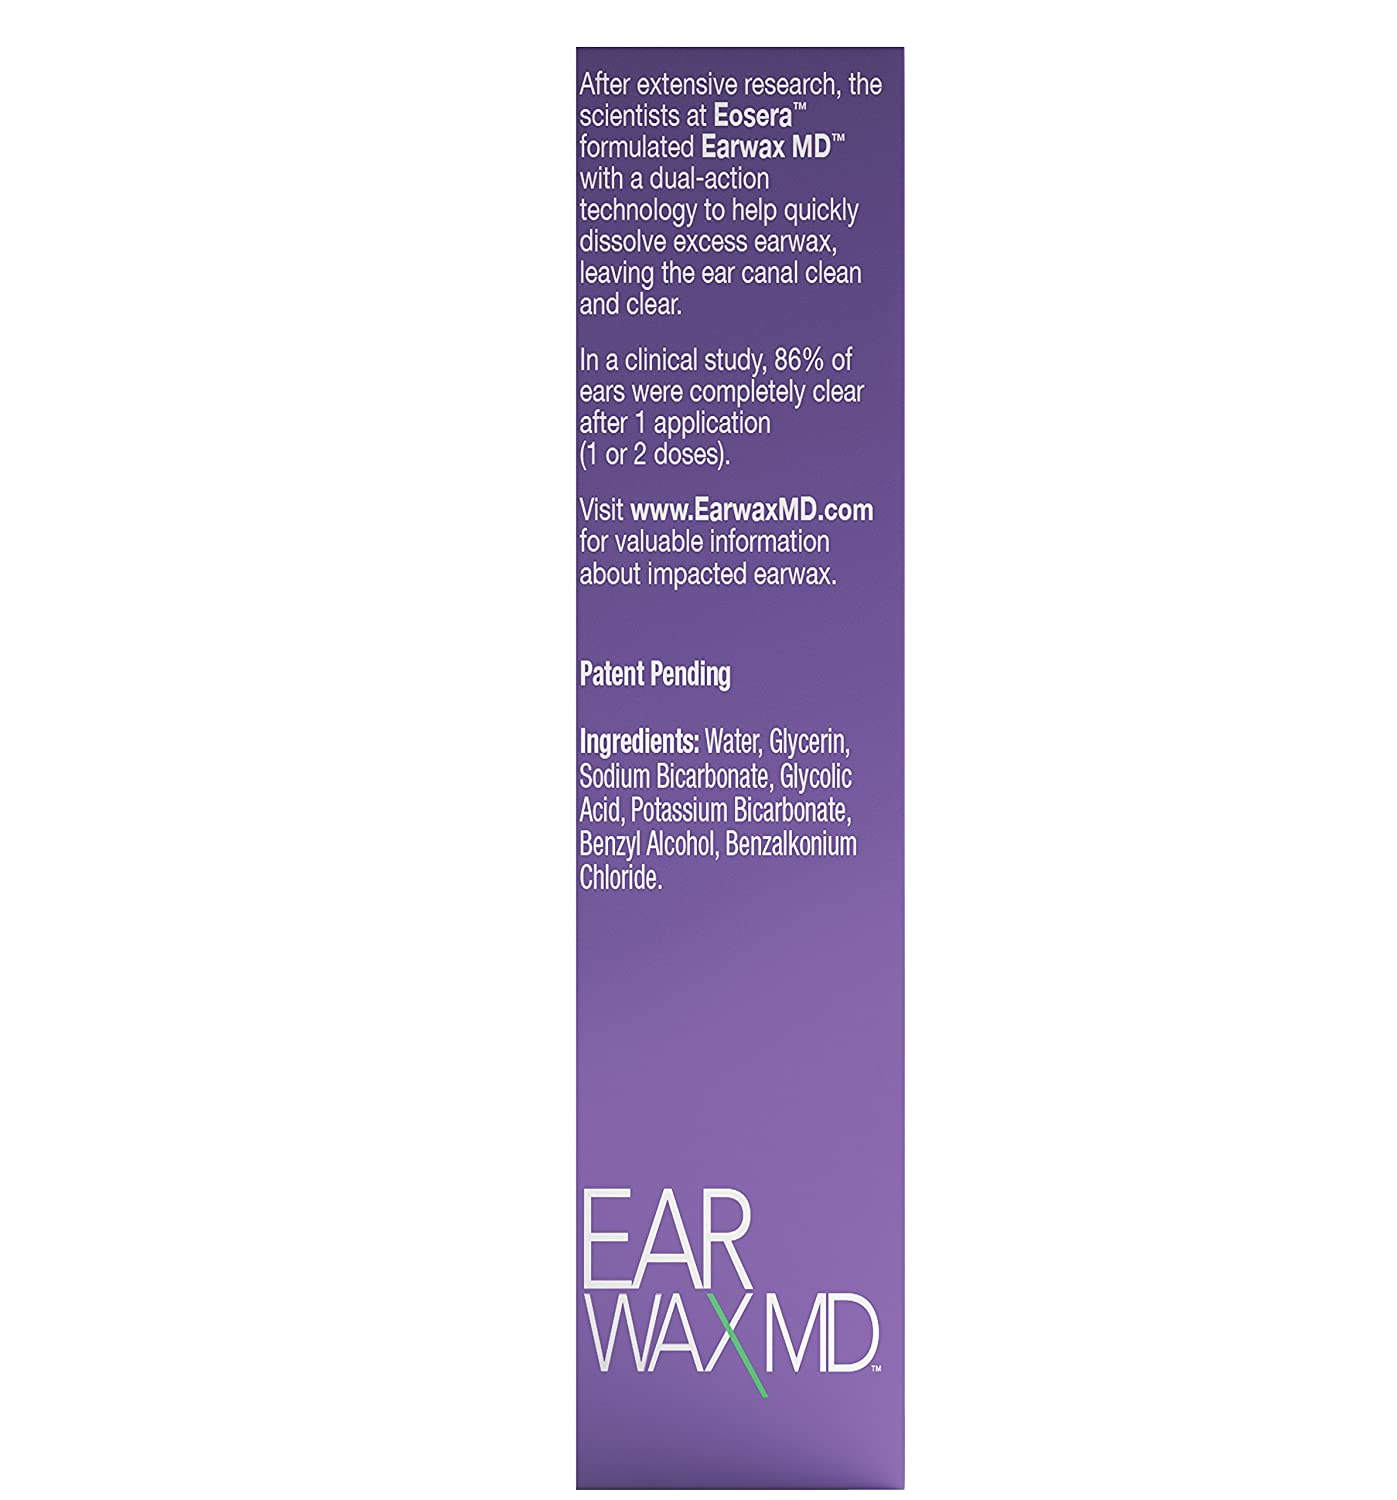 Earwax MD, Ear Wax Removal Drops for Ear Cleaning